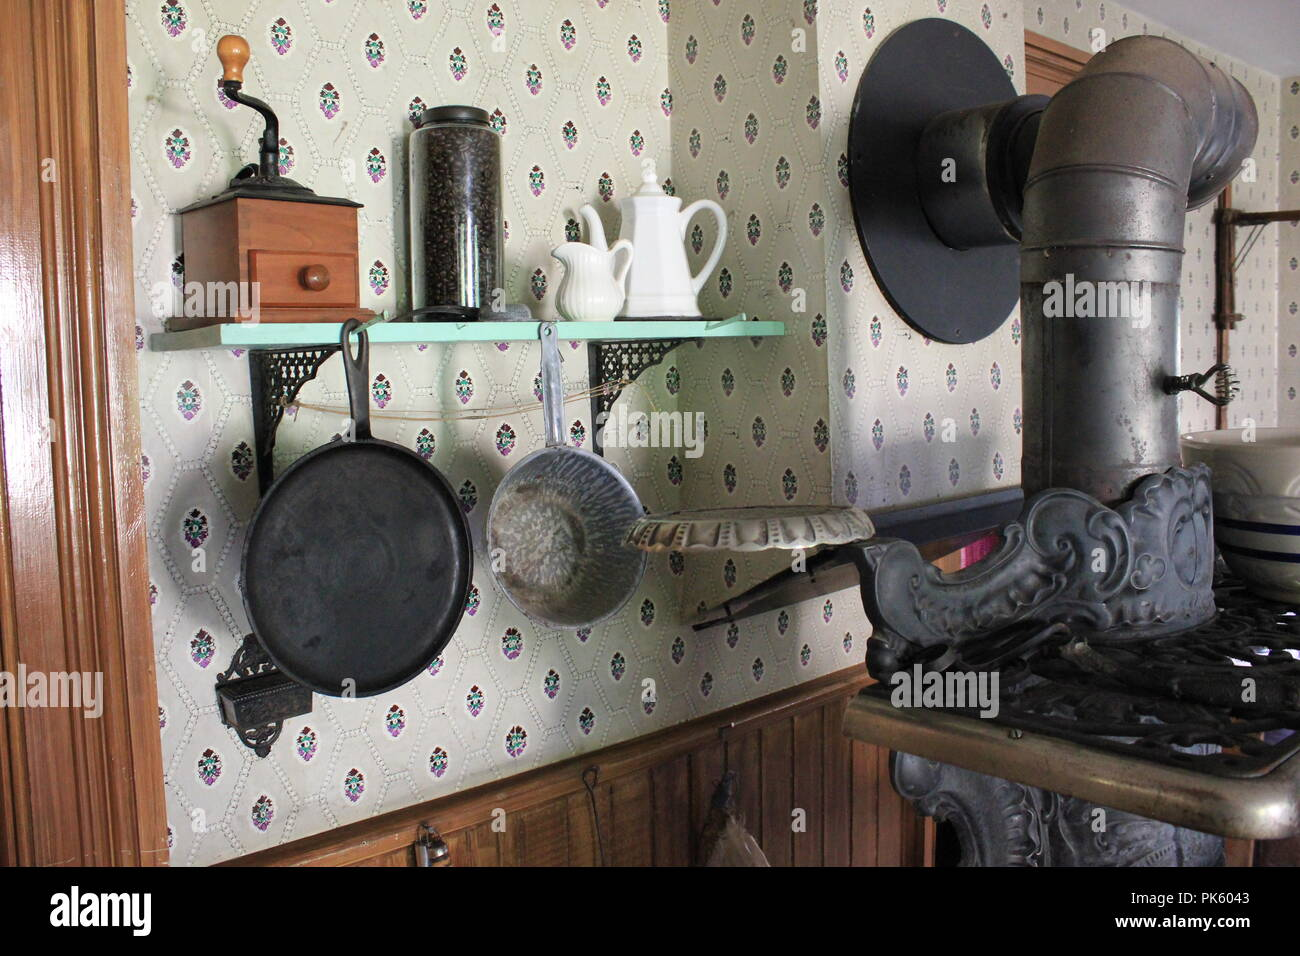 Jewel Stoves and Ranges vintage and authentic cast iron stove in the kitchen at the Volkening Heritage Farm in Schaumburg, Illinois on a late summer day. - Stock Image